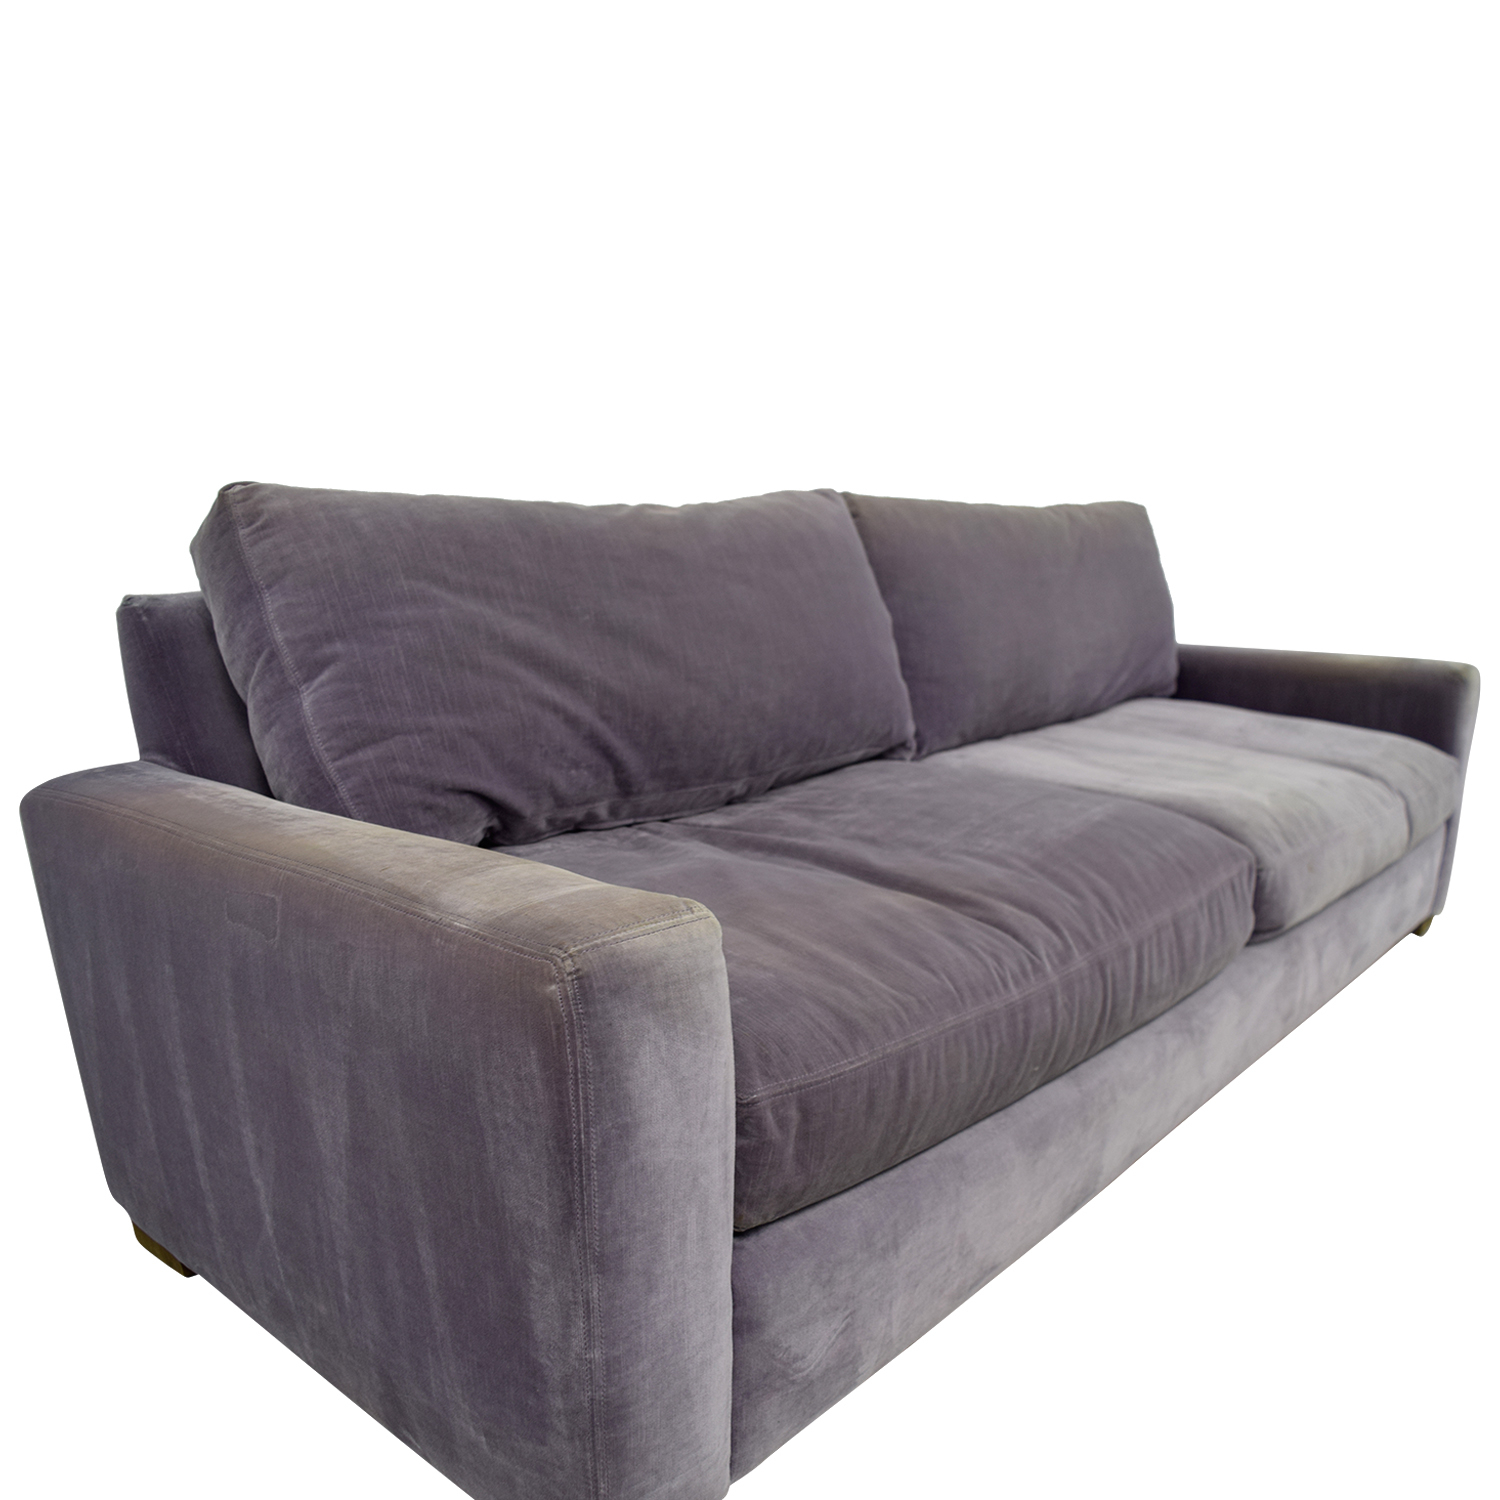 90% Off – Restoration Hardware Restoration Hardware Throughout Down Filled Sofas (View 3 of 15)